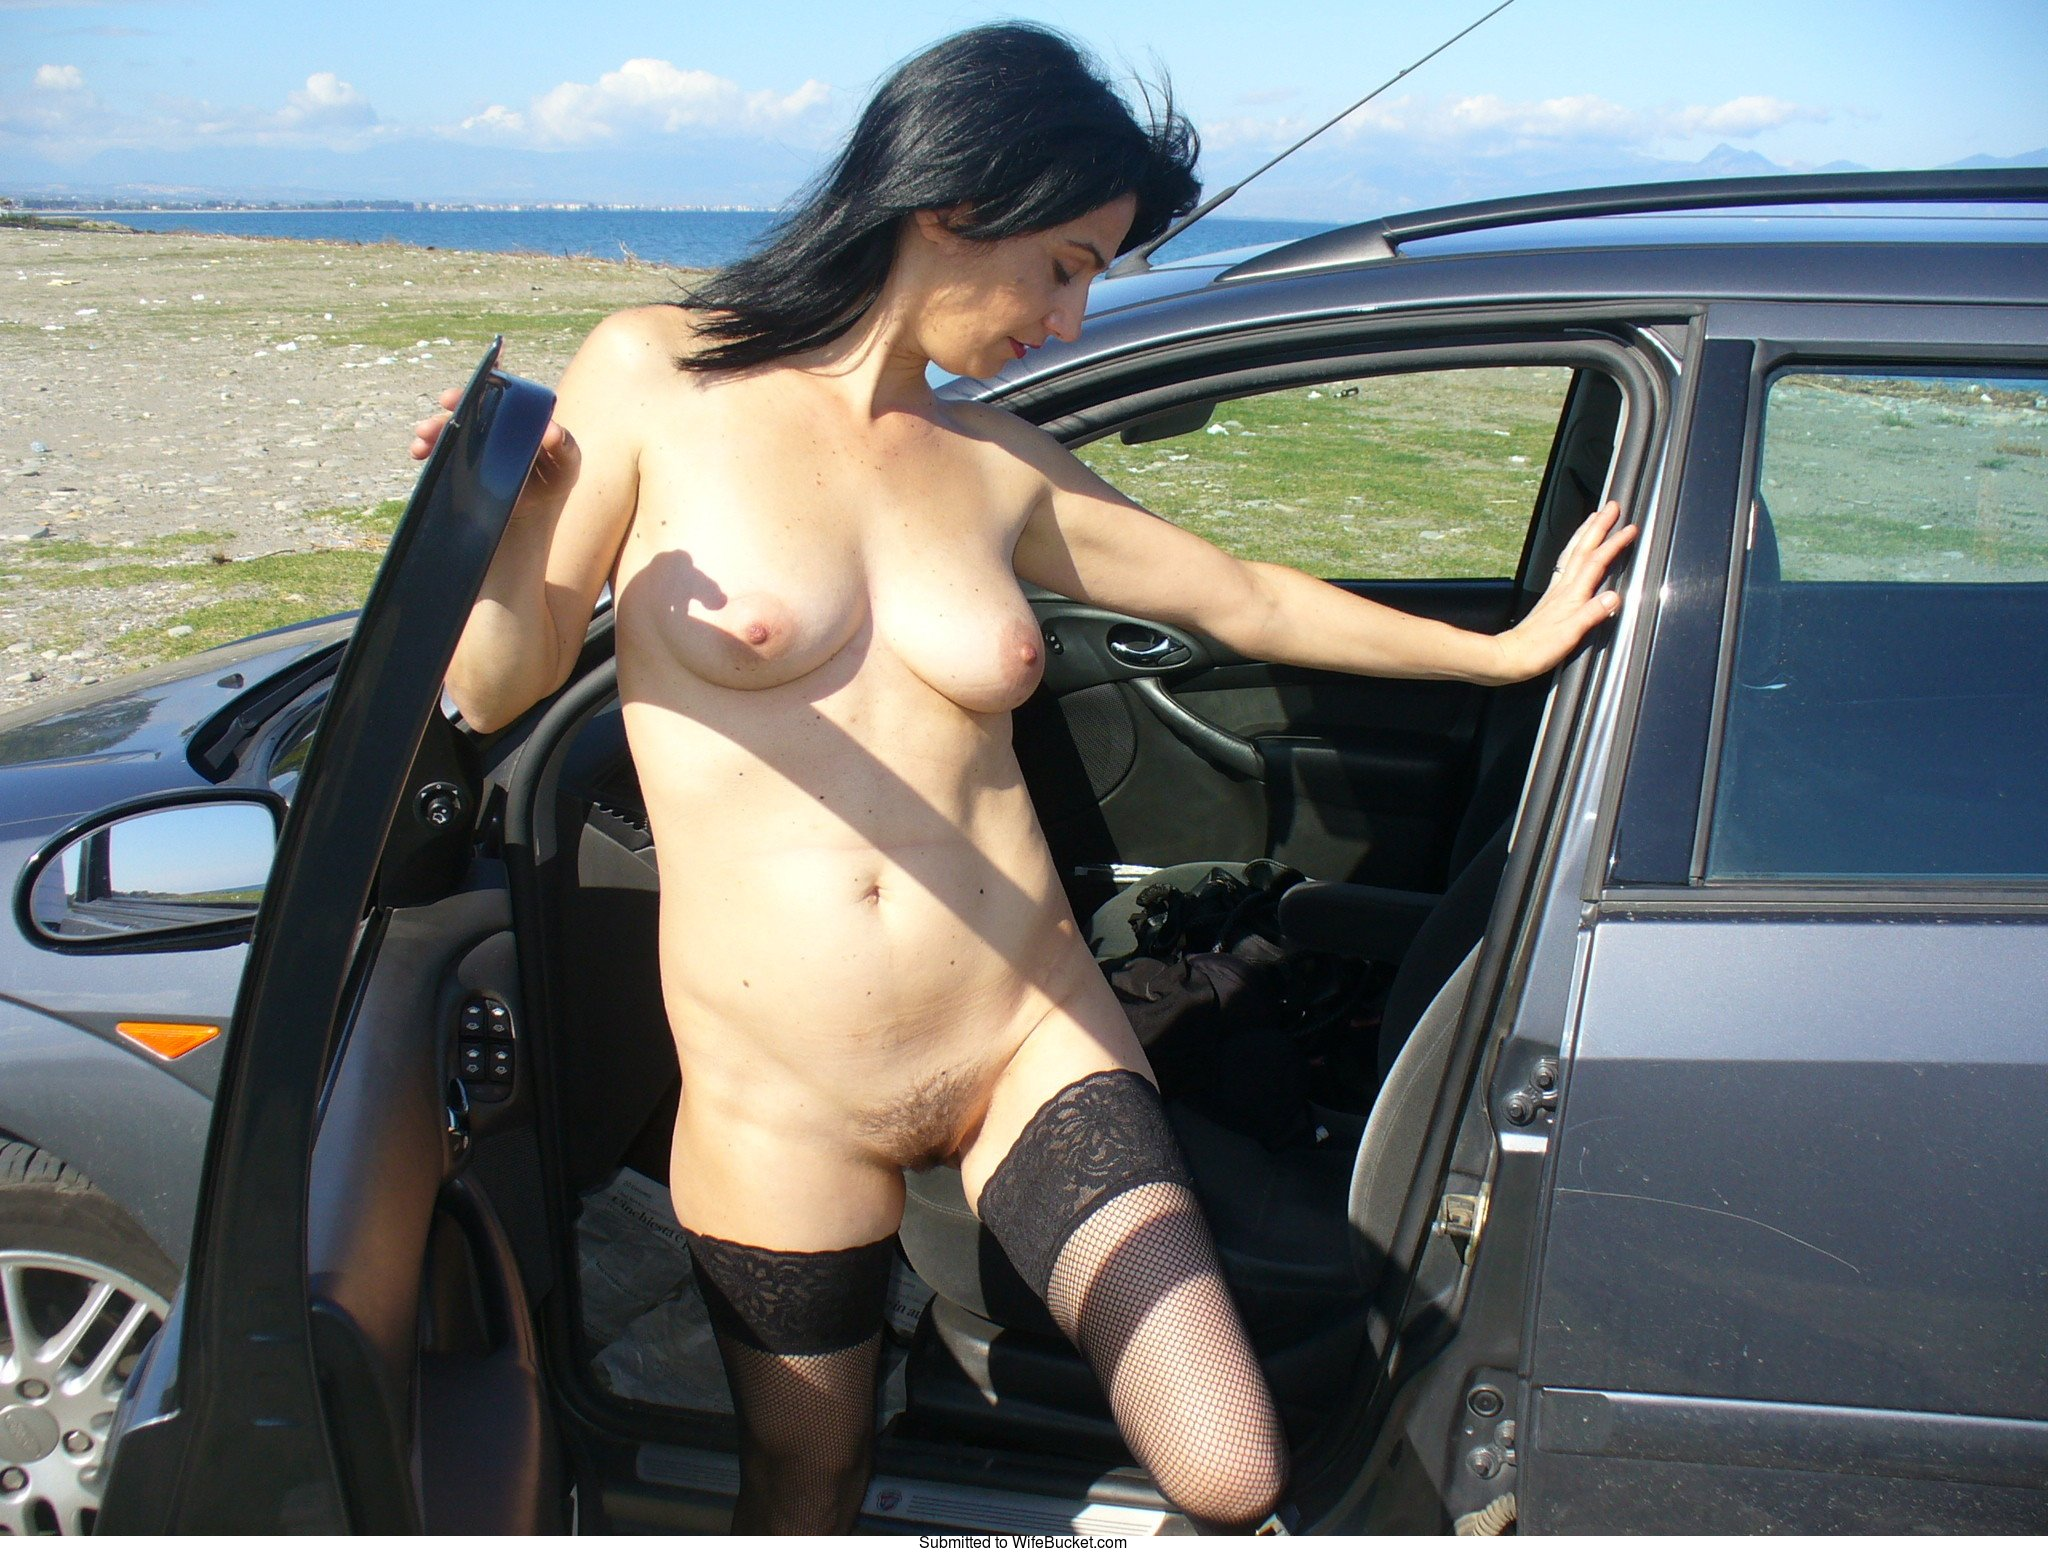 Really. nude milf car sex remarkable